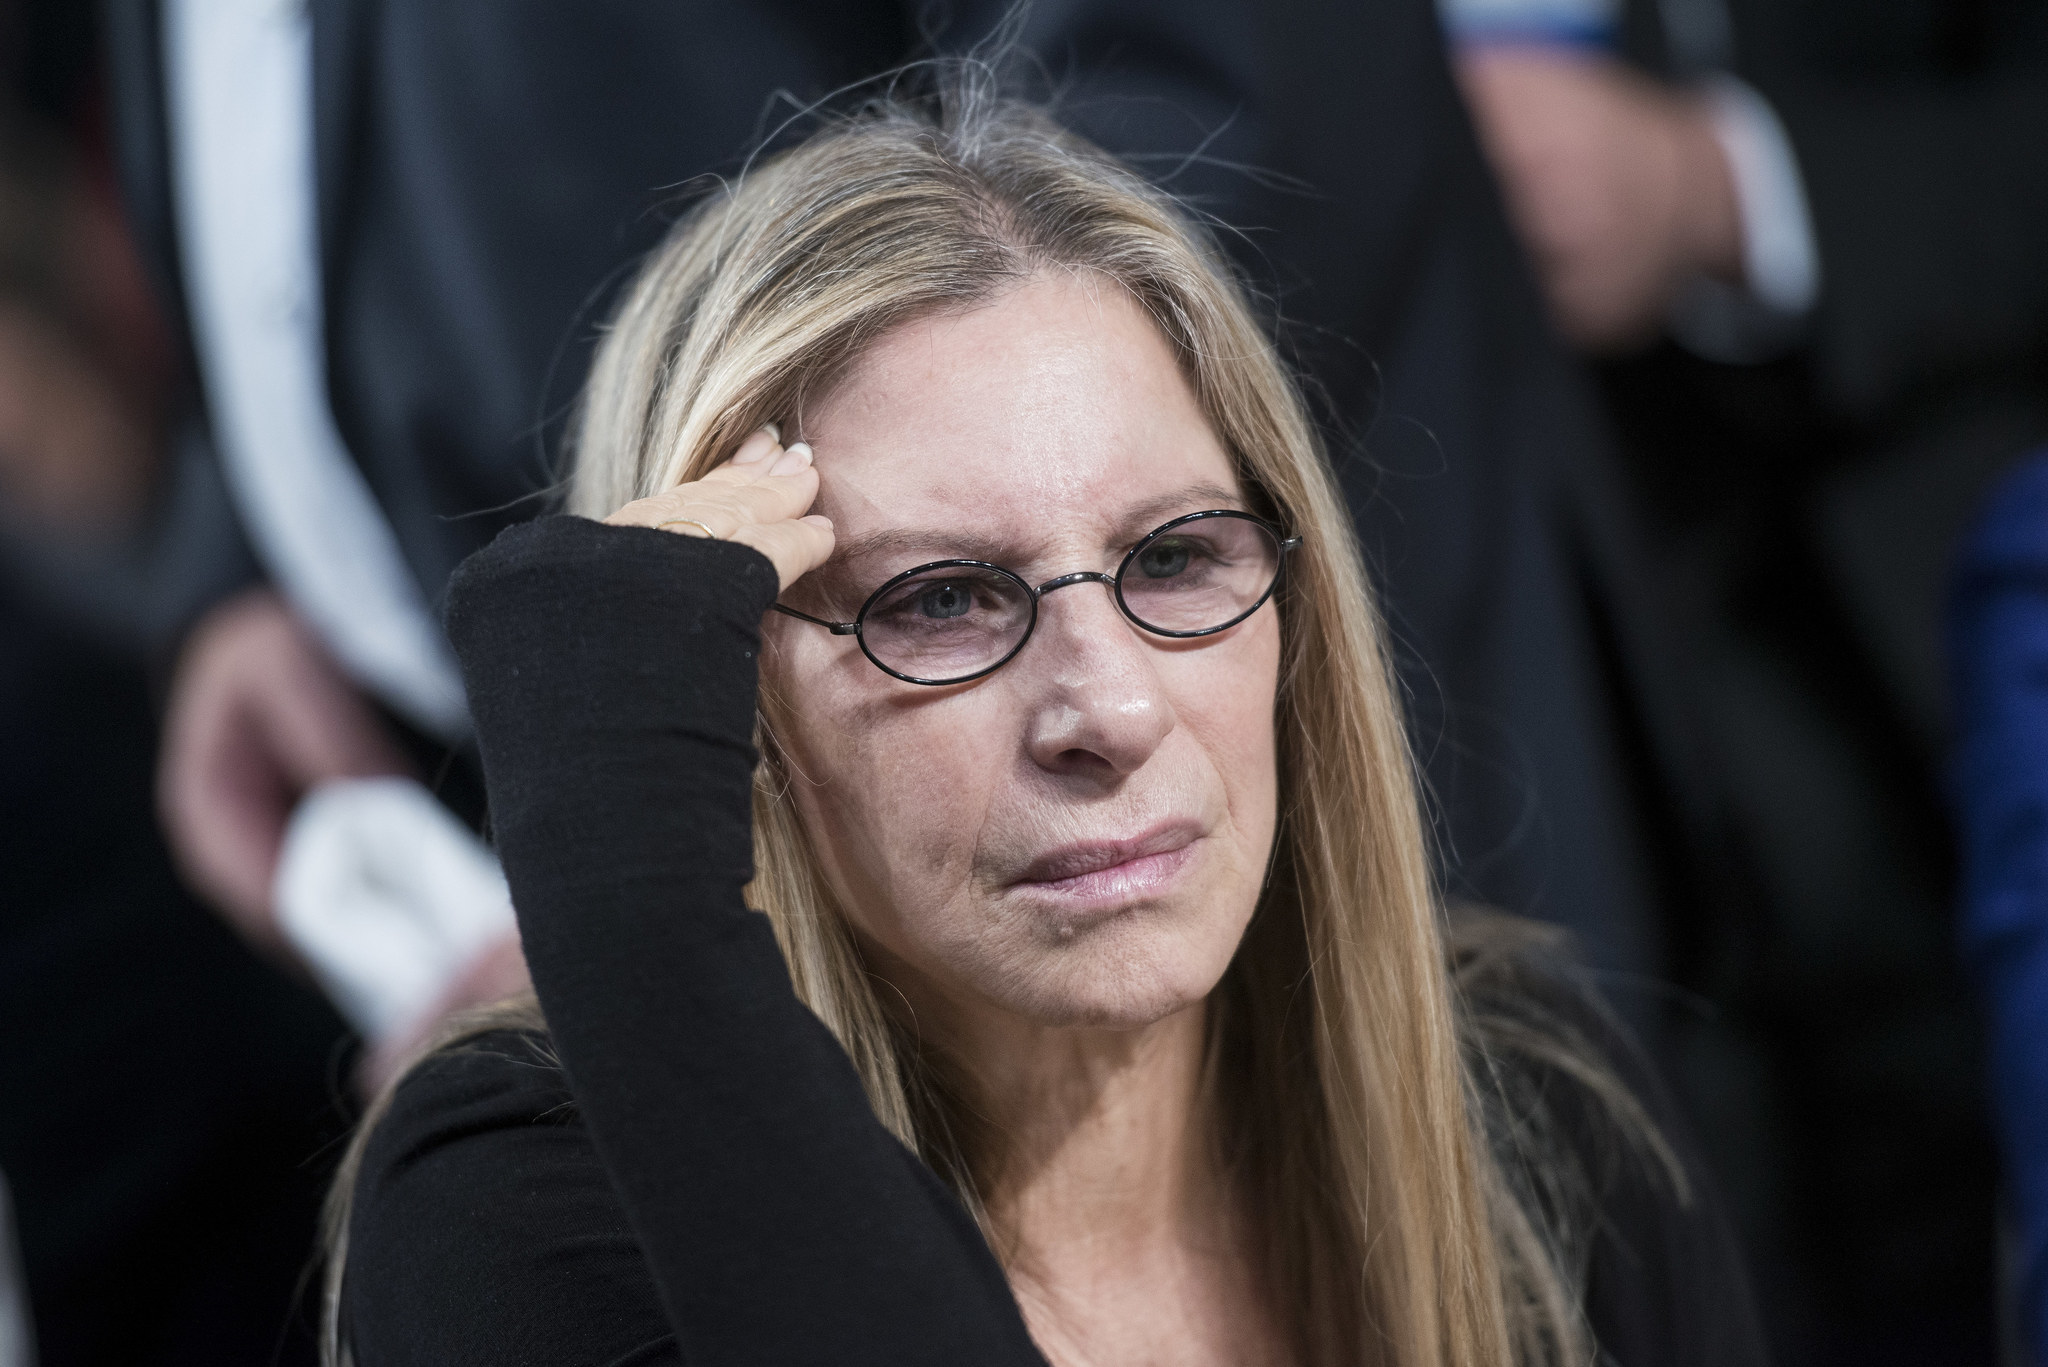 Barbra Streisand slams Globes for not giving award to women directors